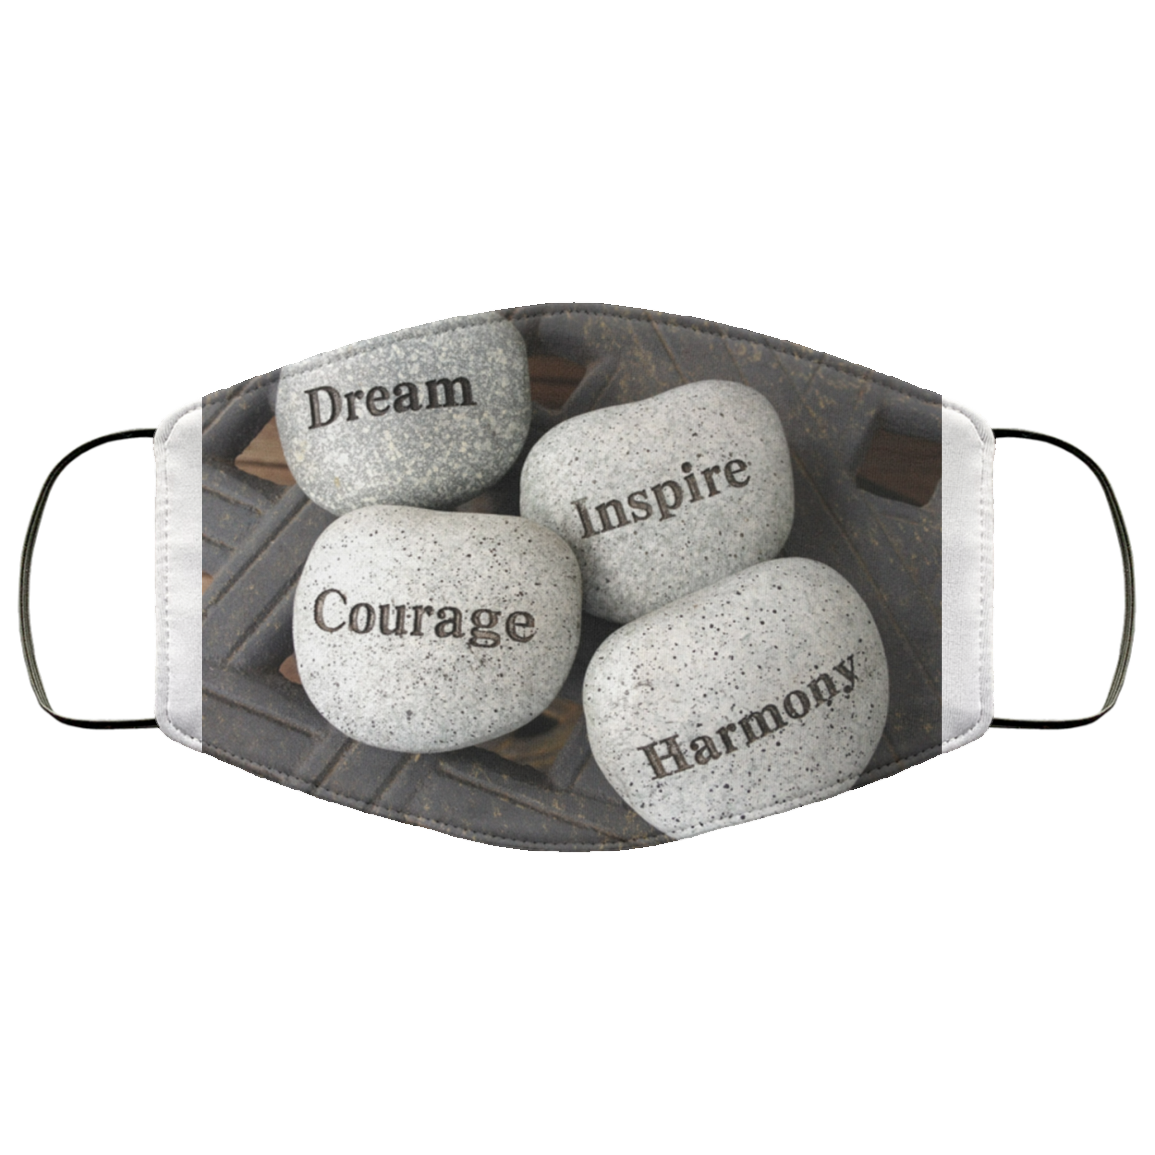 Inspirational Stones - OMG I Really Want That